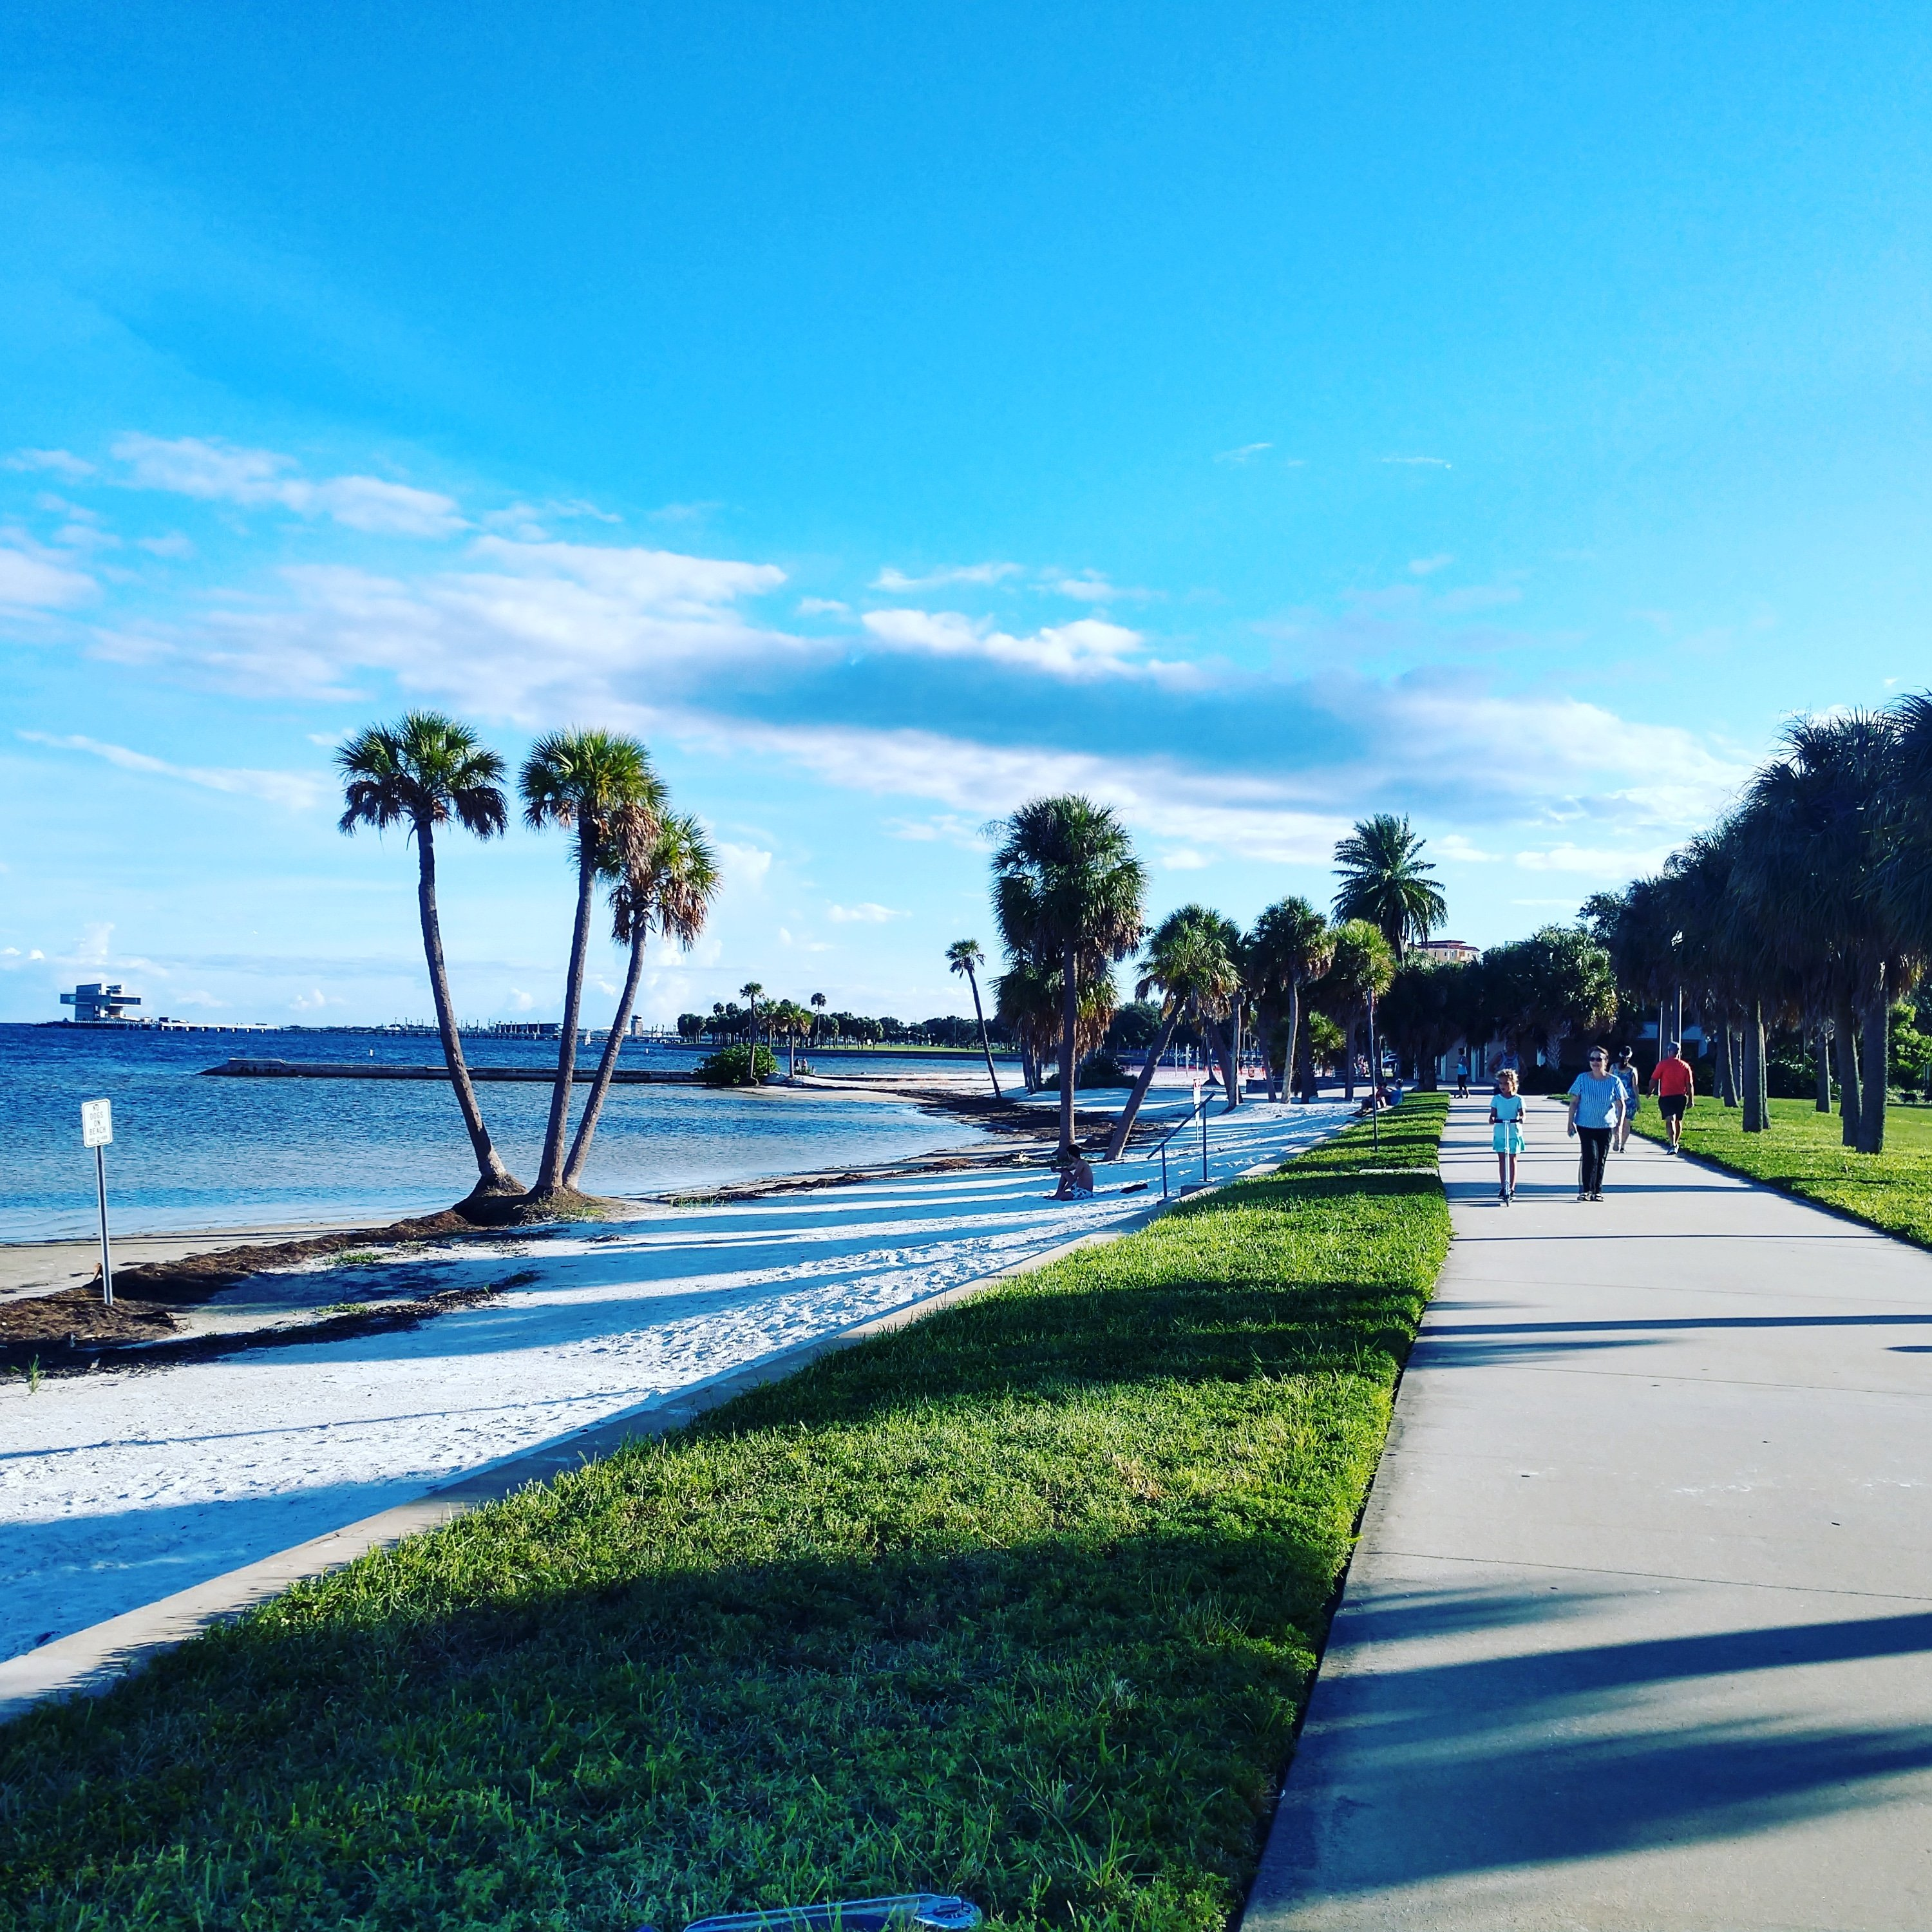 free things to do in St. pete - water front